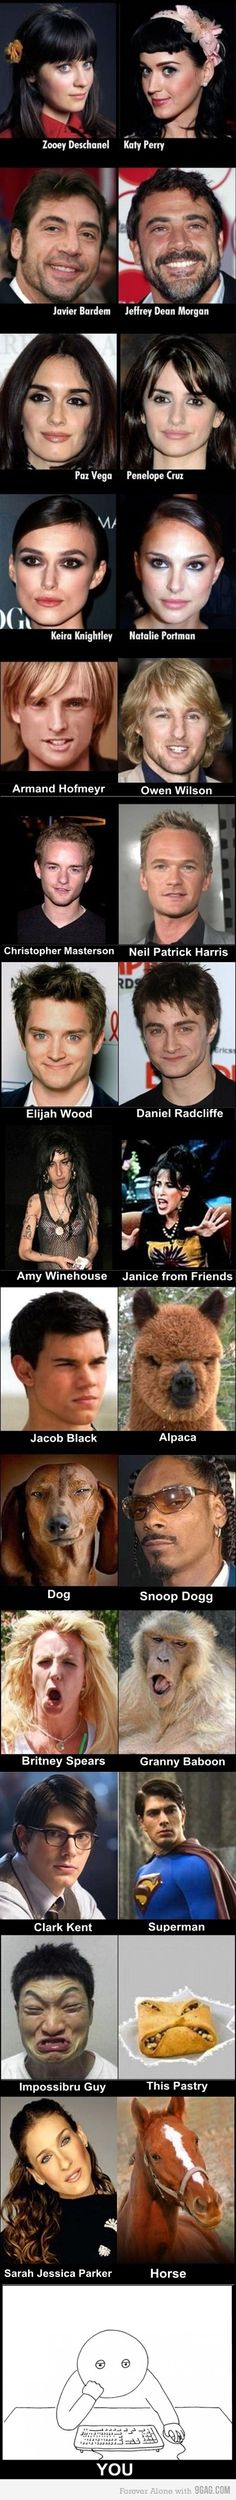 Creepy or Cool look-a-likes?  Sometimes it doesn't matter cos its funny.